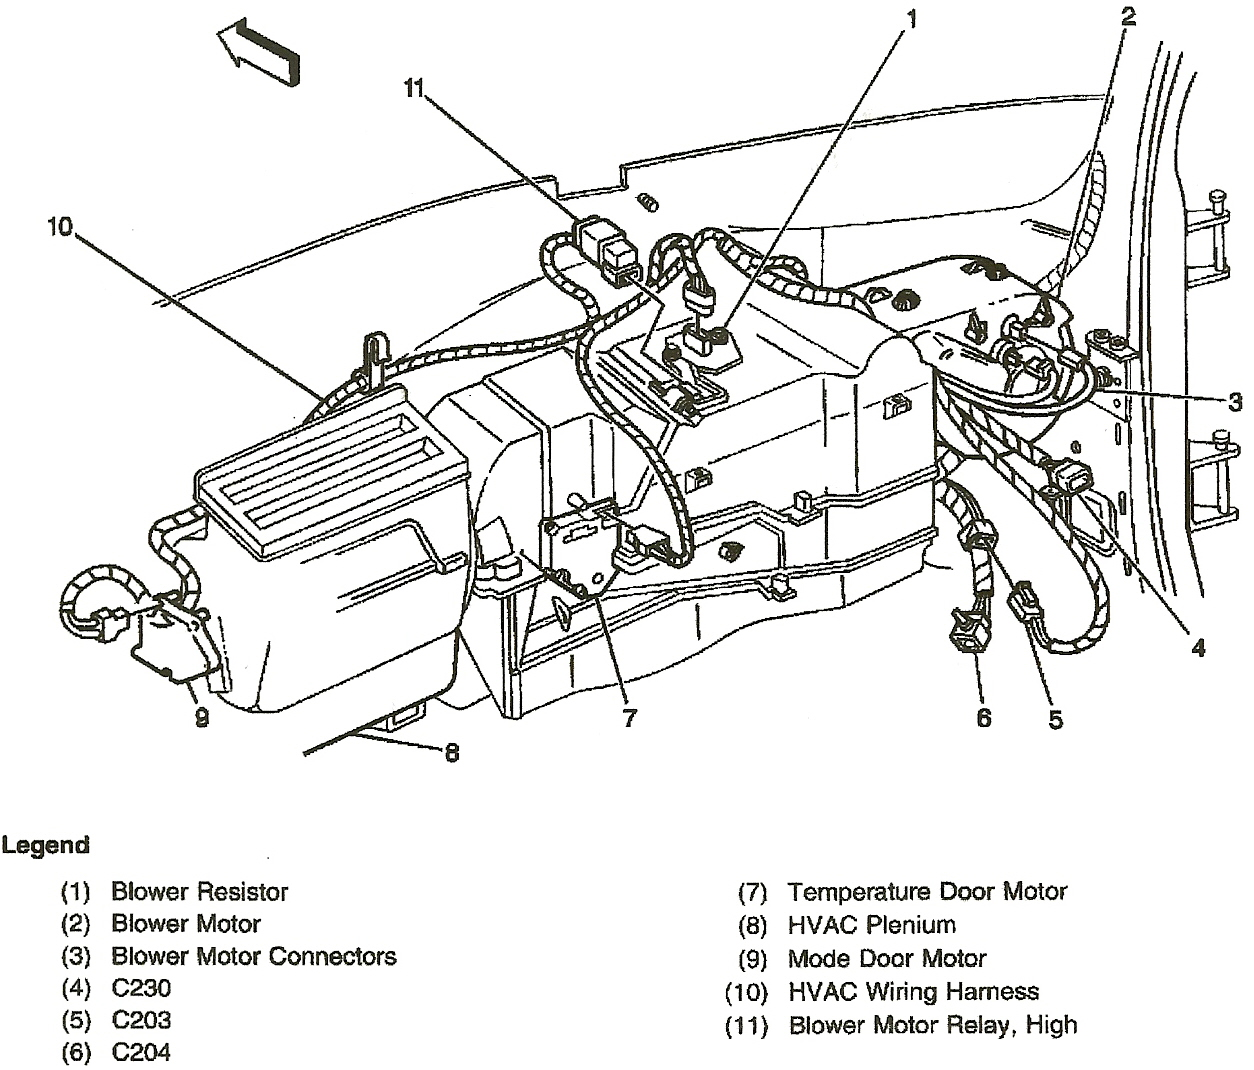 1997 Chevy Cavalier Fuse Box Diagram Manual Of Wiring How To Test A Suburban Blower Motor My Pro Street 97 Chevrolet